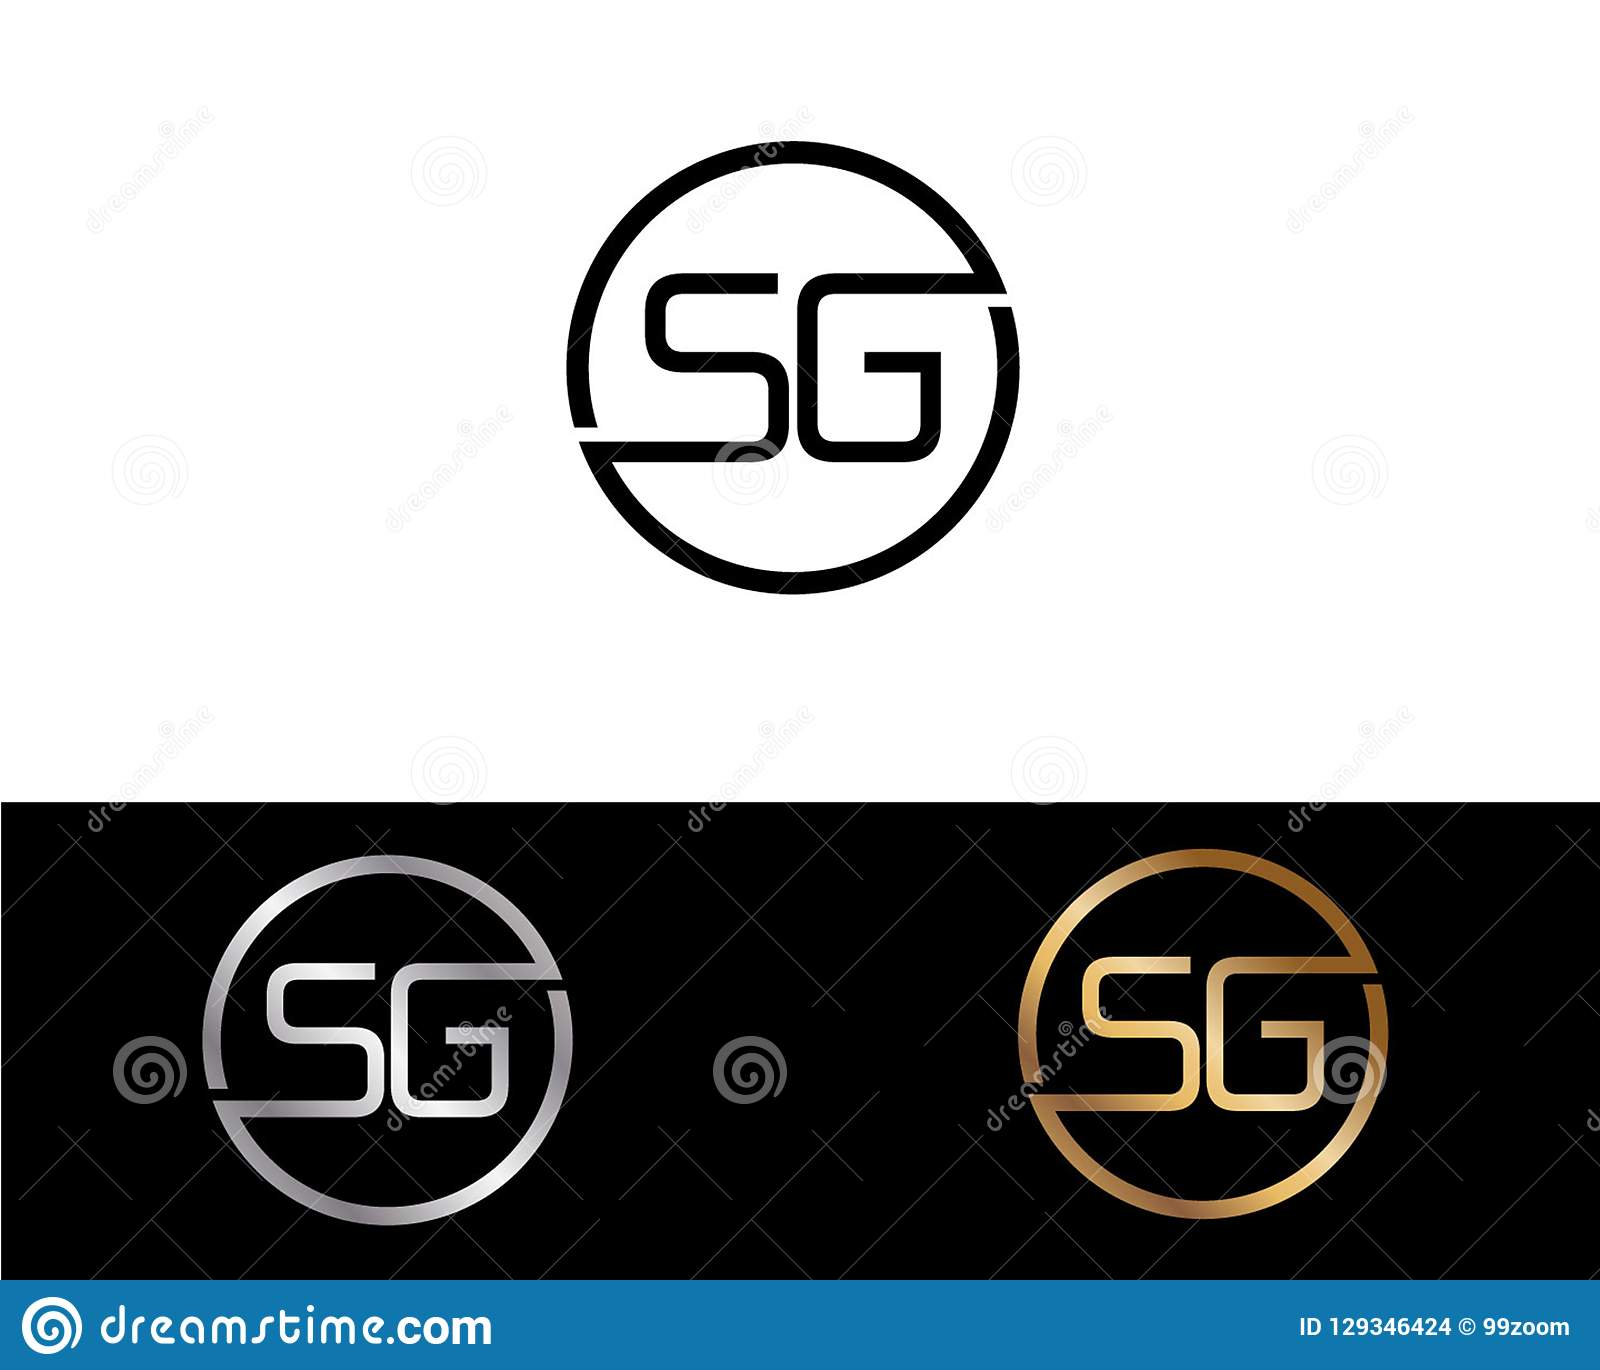 gold and white logo design